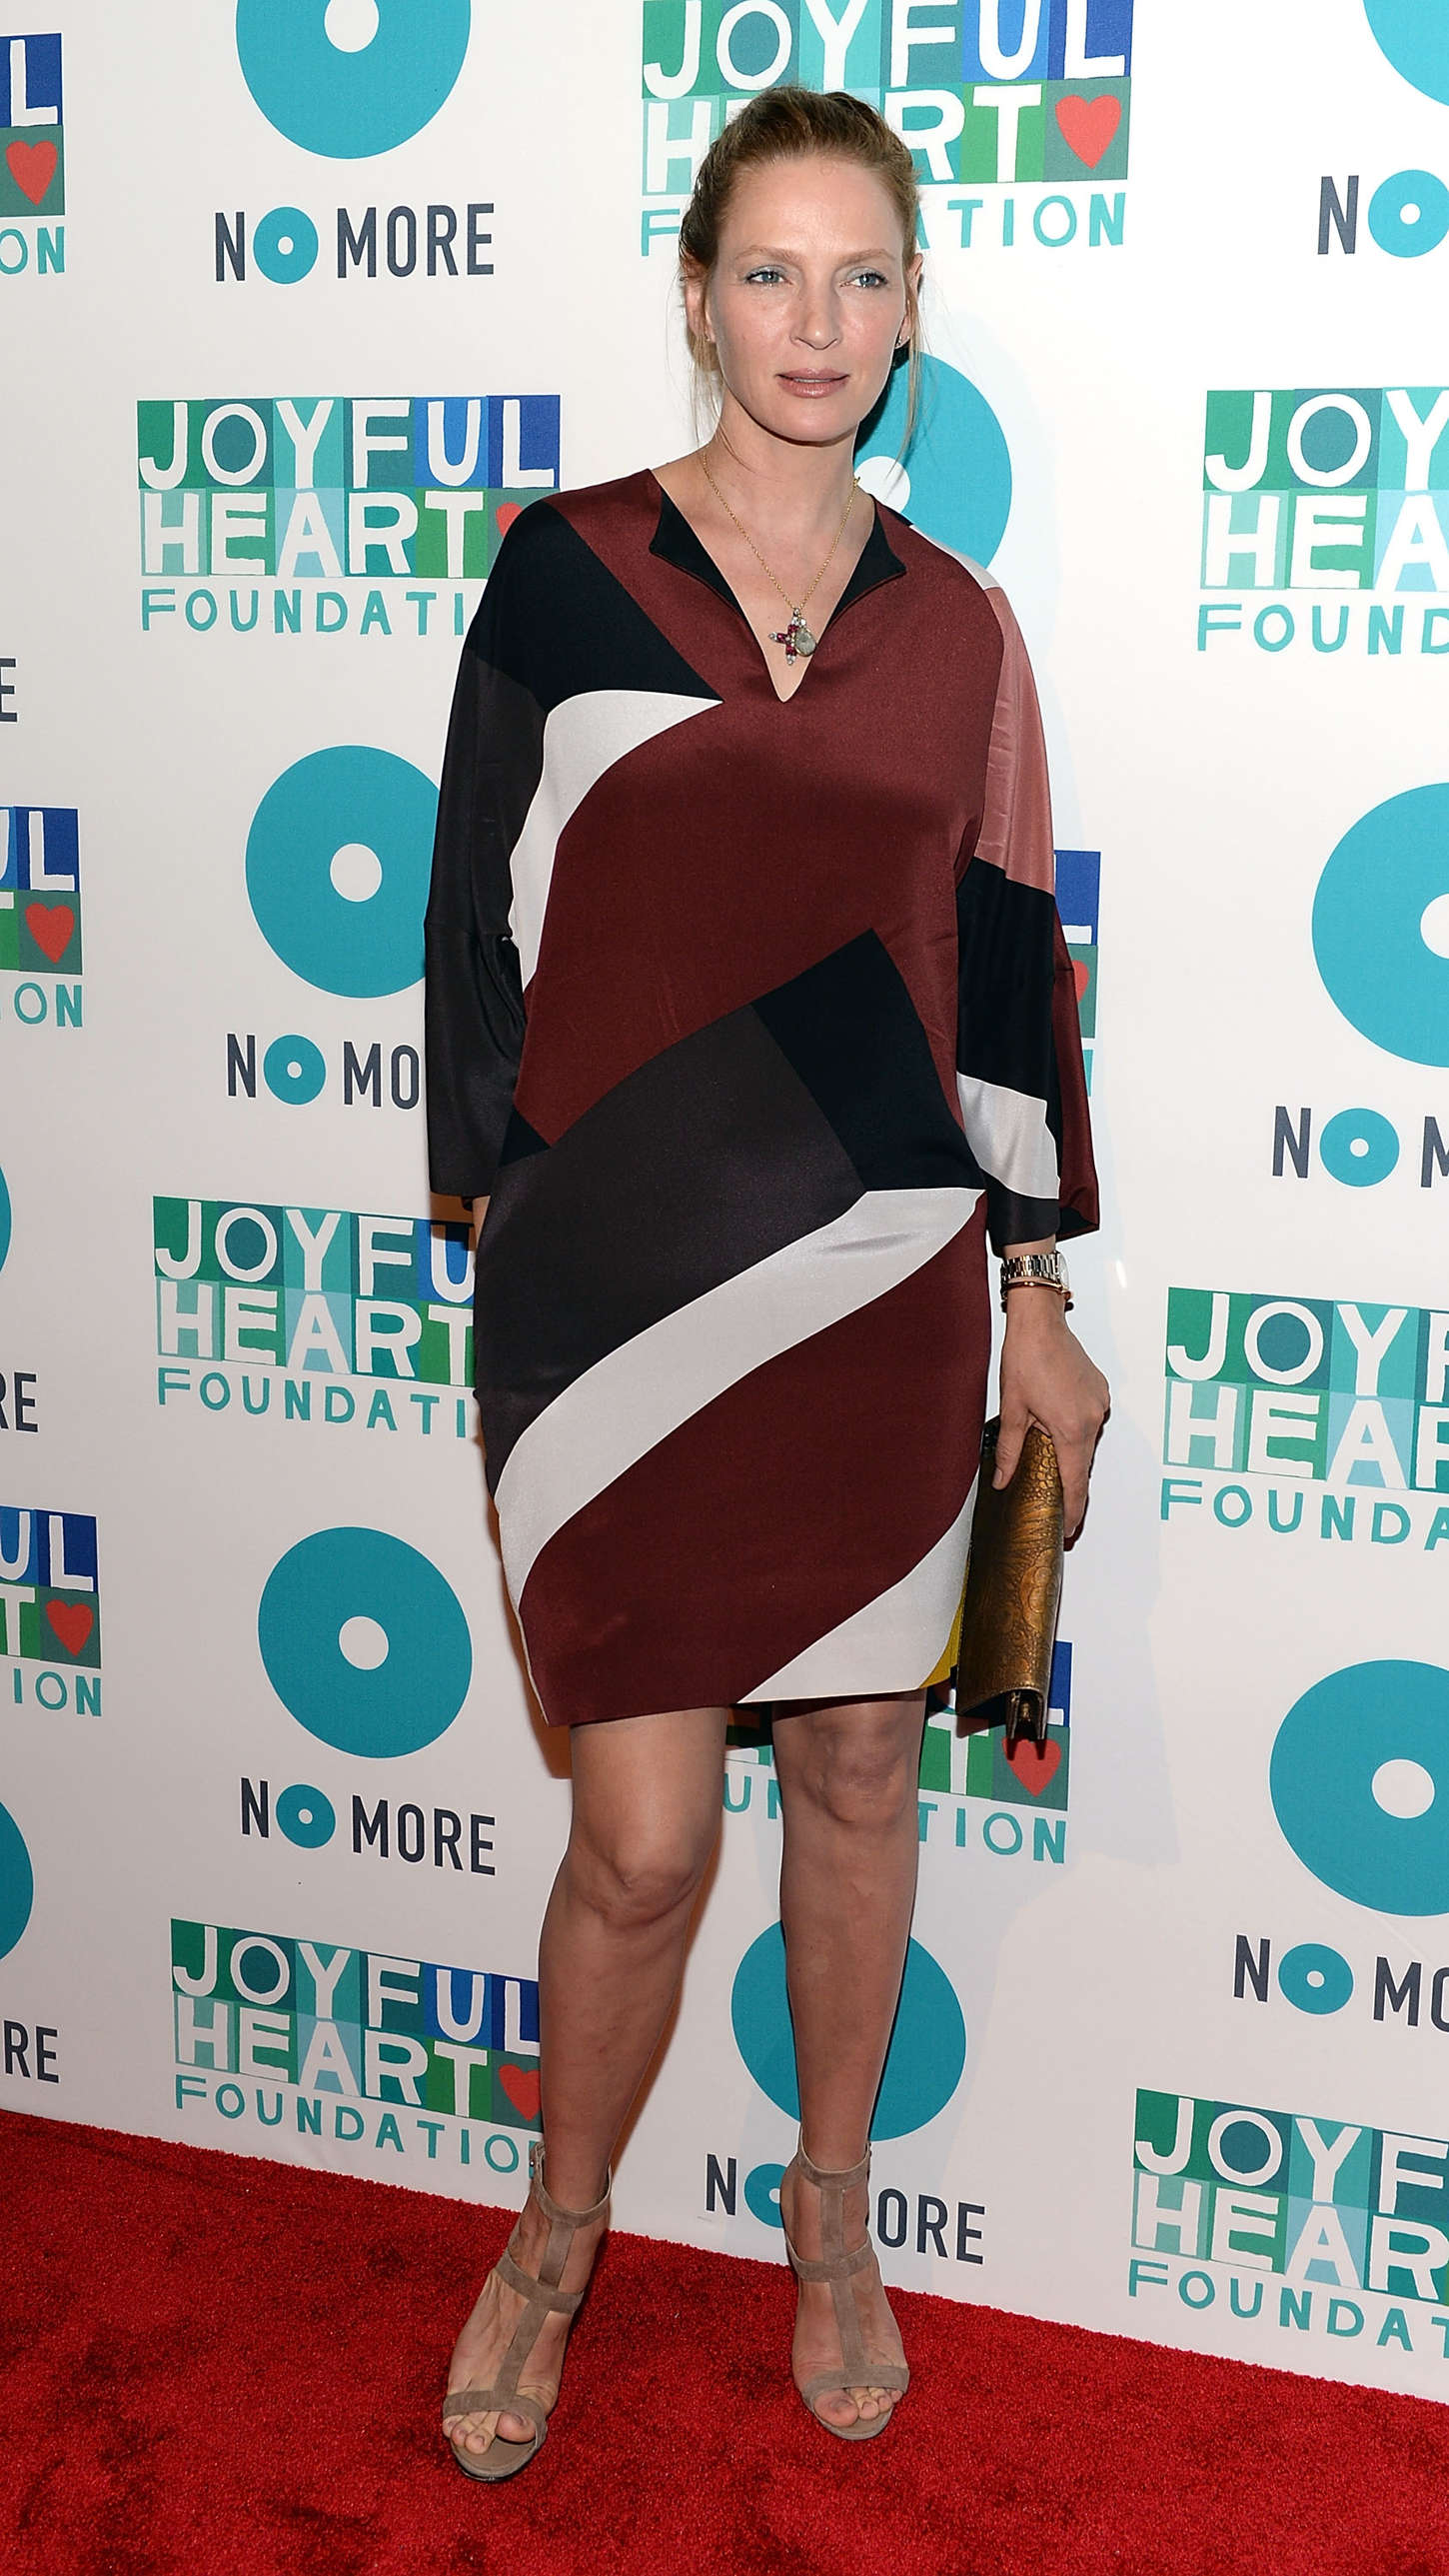 Uma Thurman Joyful Heart Foundation Gala in New York